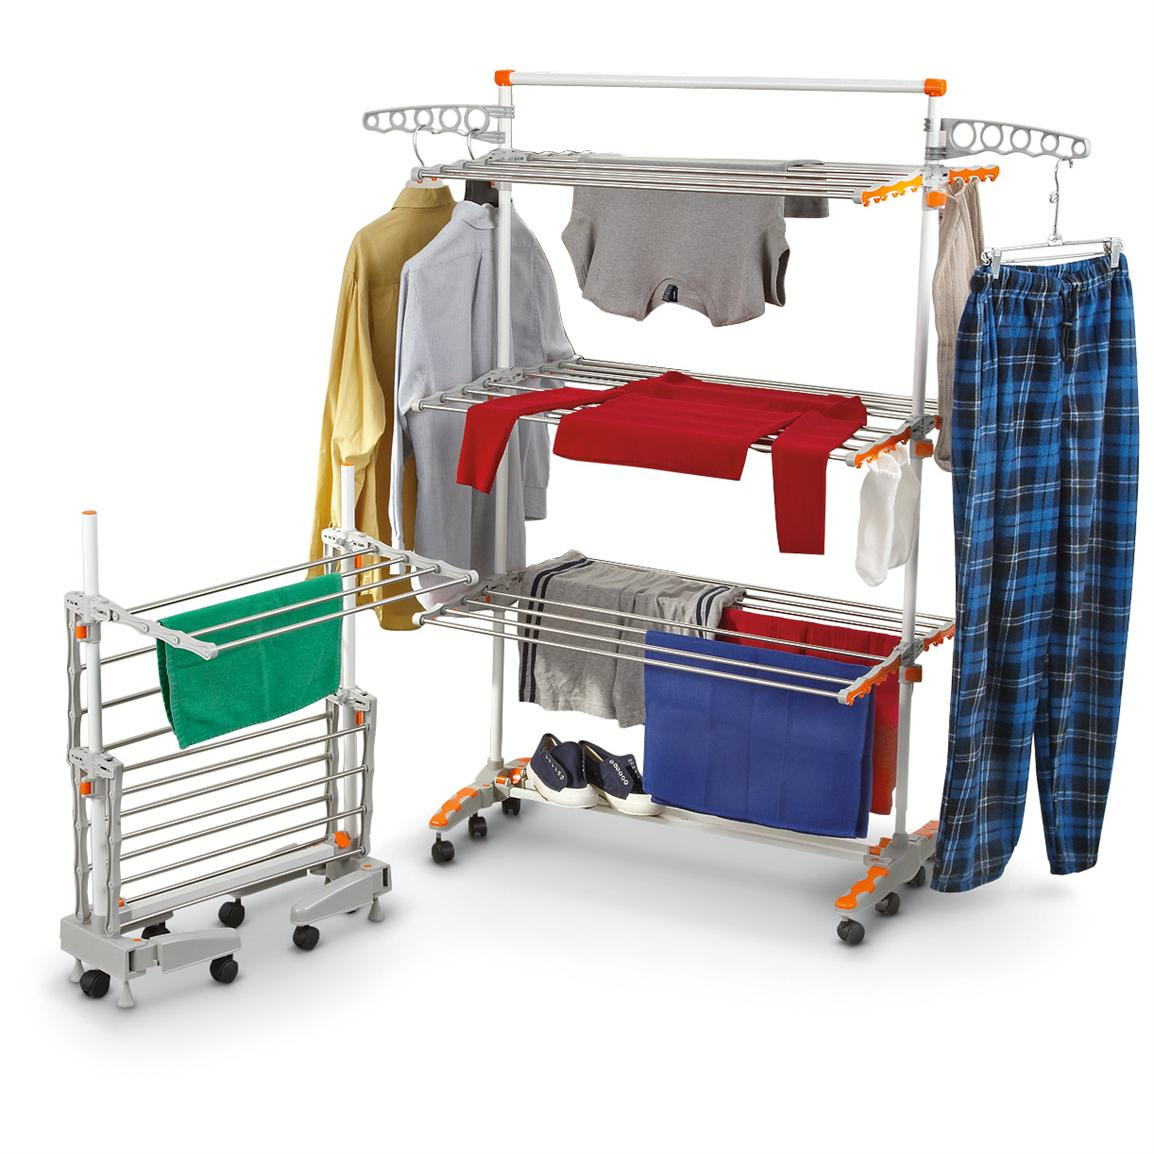 Image of: Stainless steel laundry drying rack